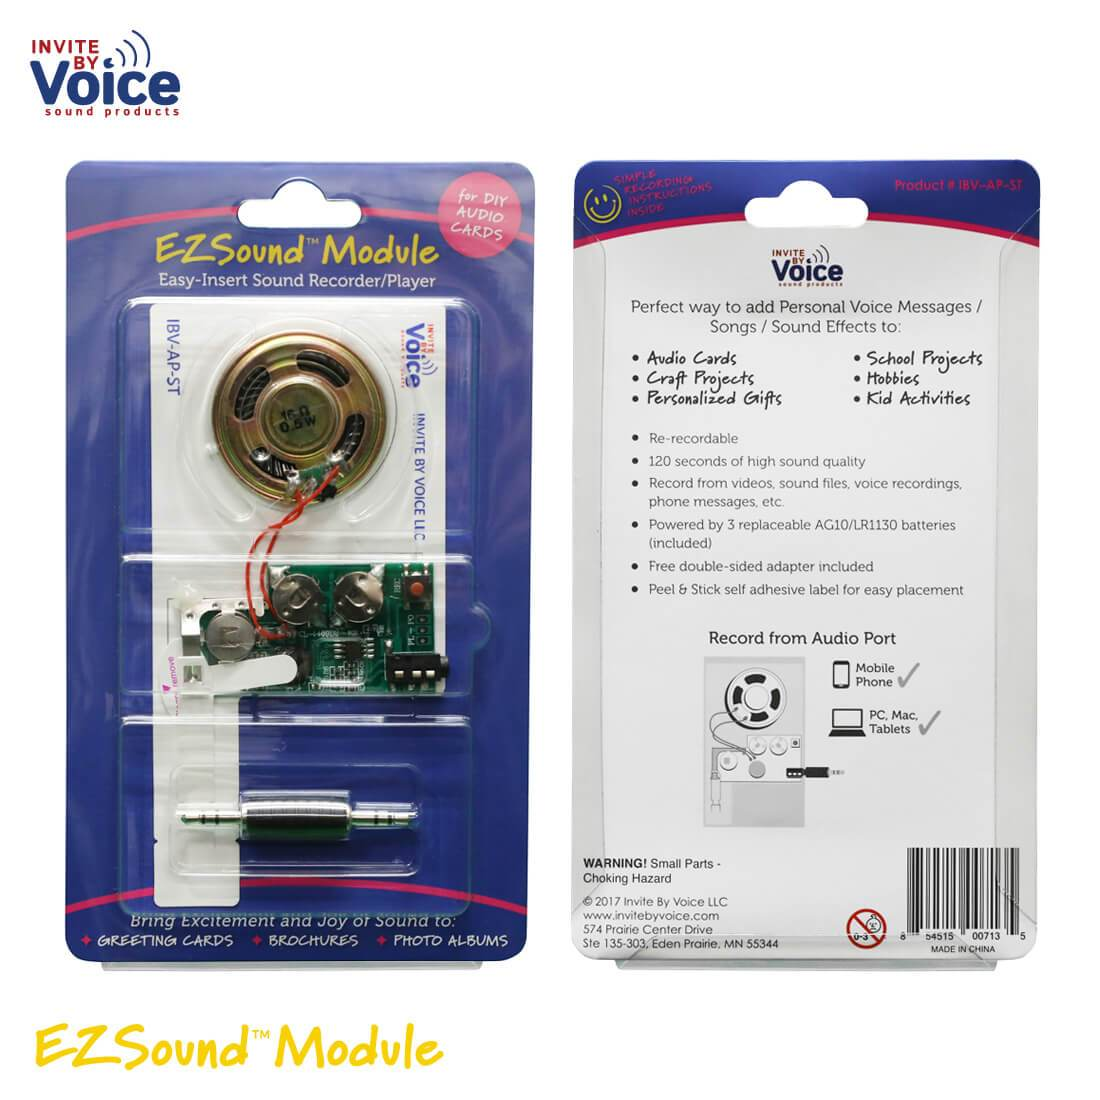 Recordable sound module insert for diy audi cards voice chip ezsound module for diy audio cards easy to record 120 seconds recording high sound quality m4hsunfo